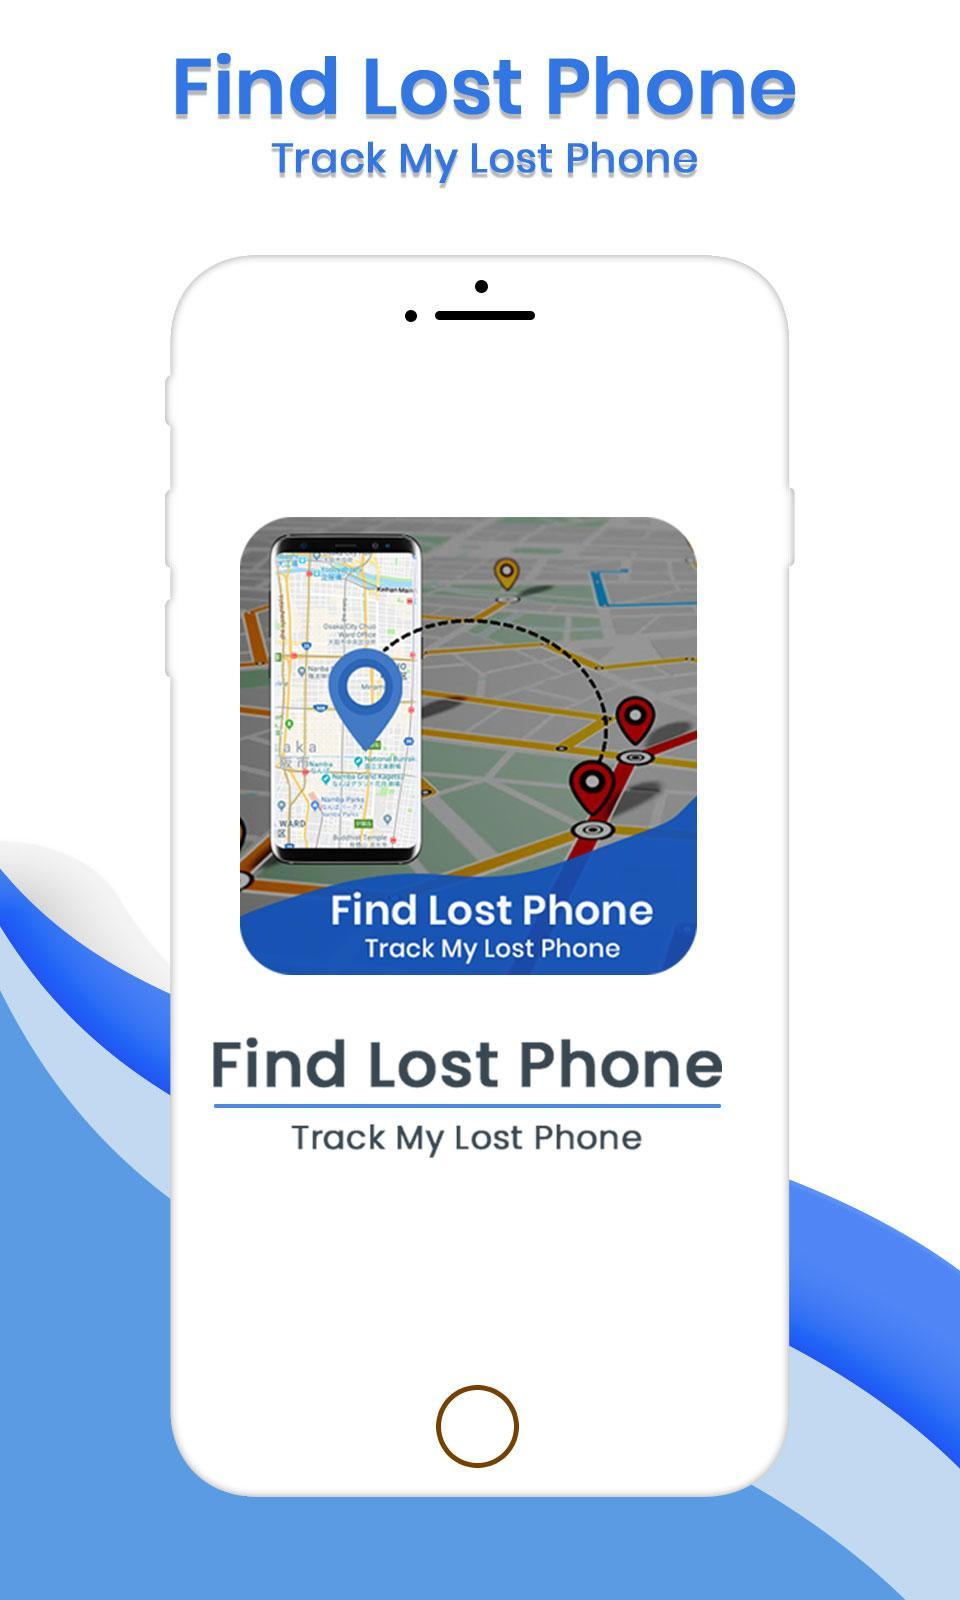 Find Lost Phone Track My Lost Phone for Android - APK Download